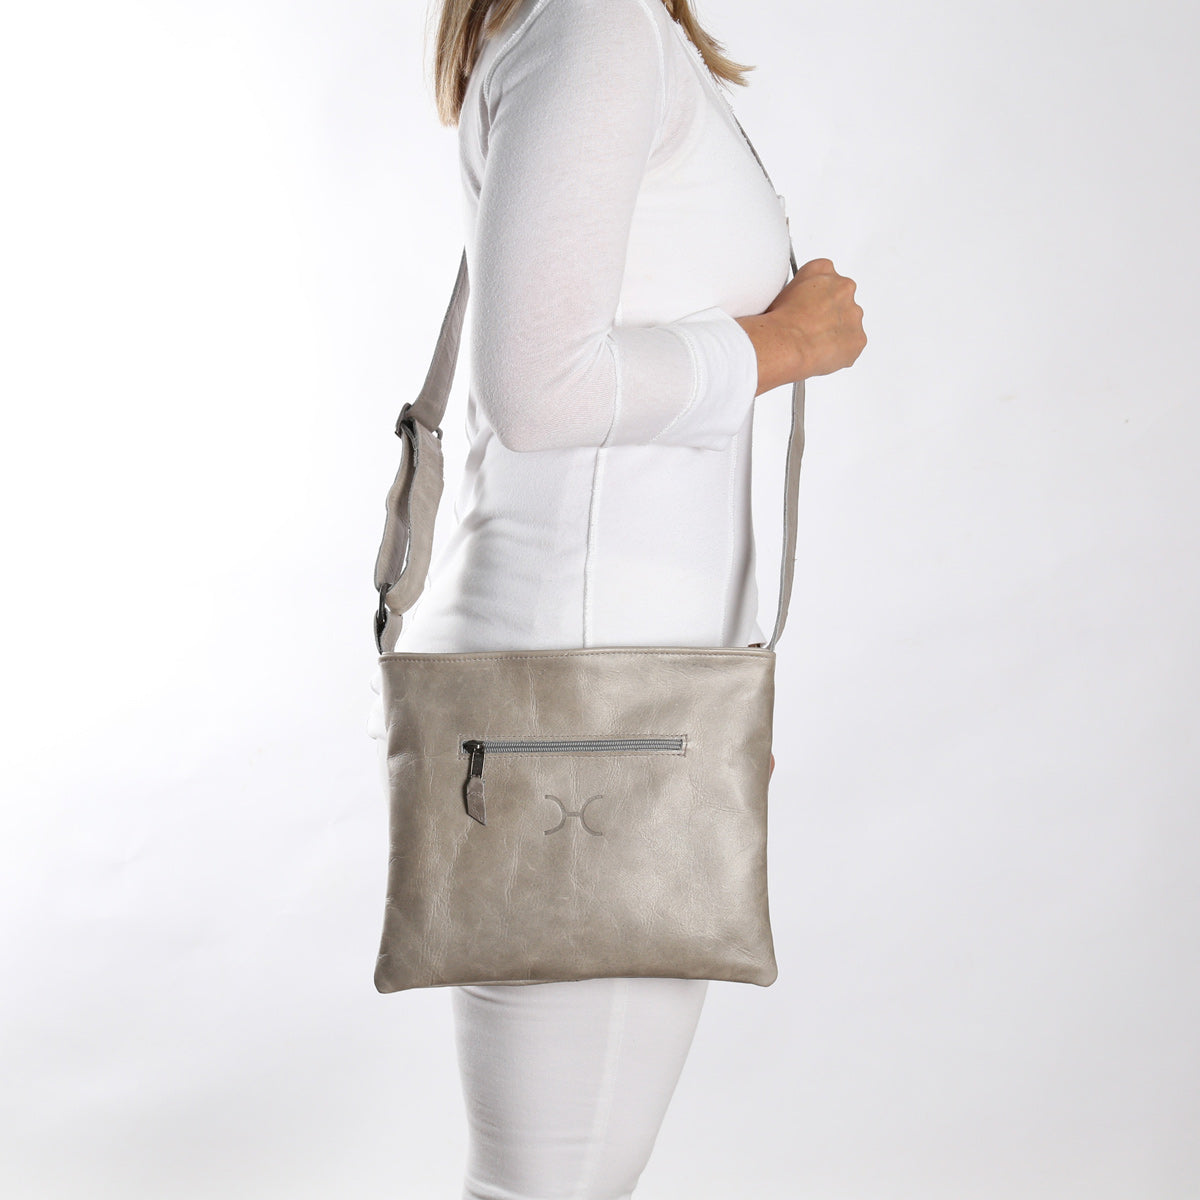 Thandana Mini Messenger Sling Bag - Grey - Zufrique Boutique